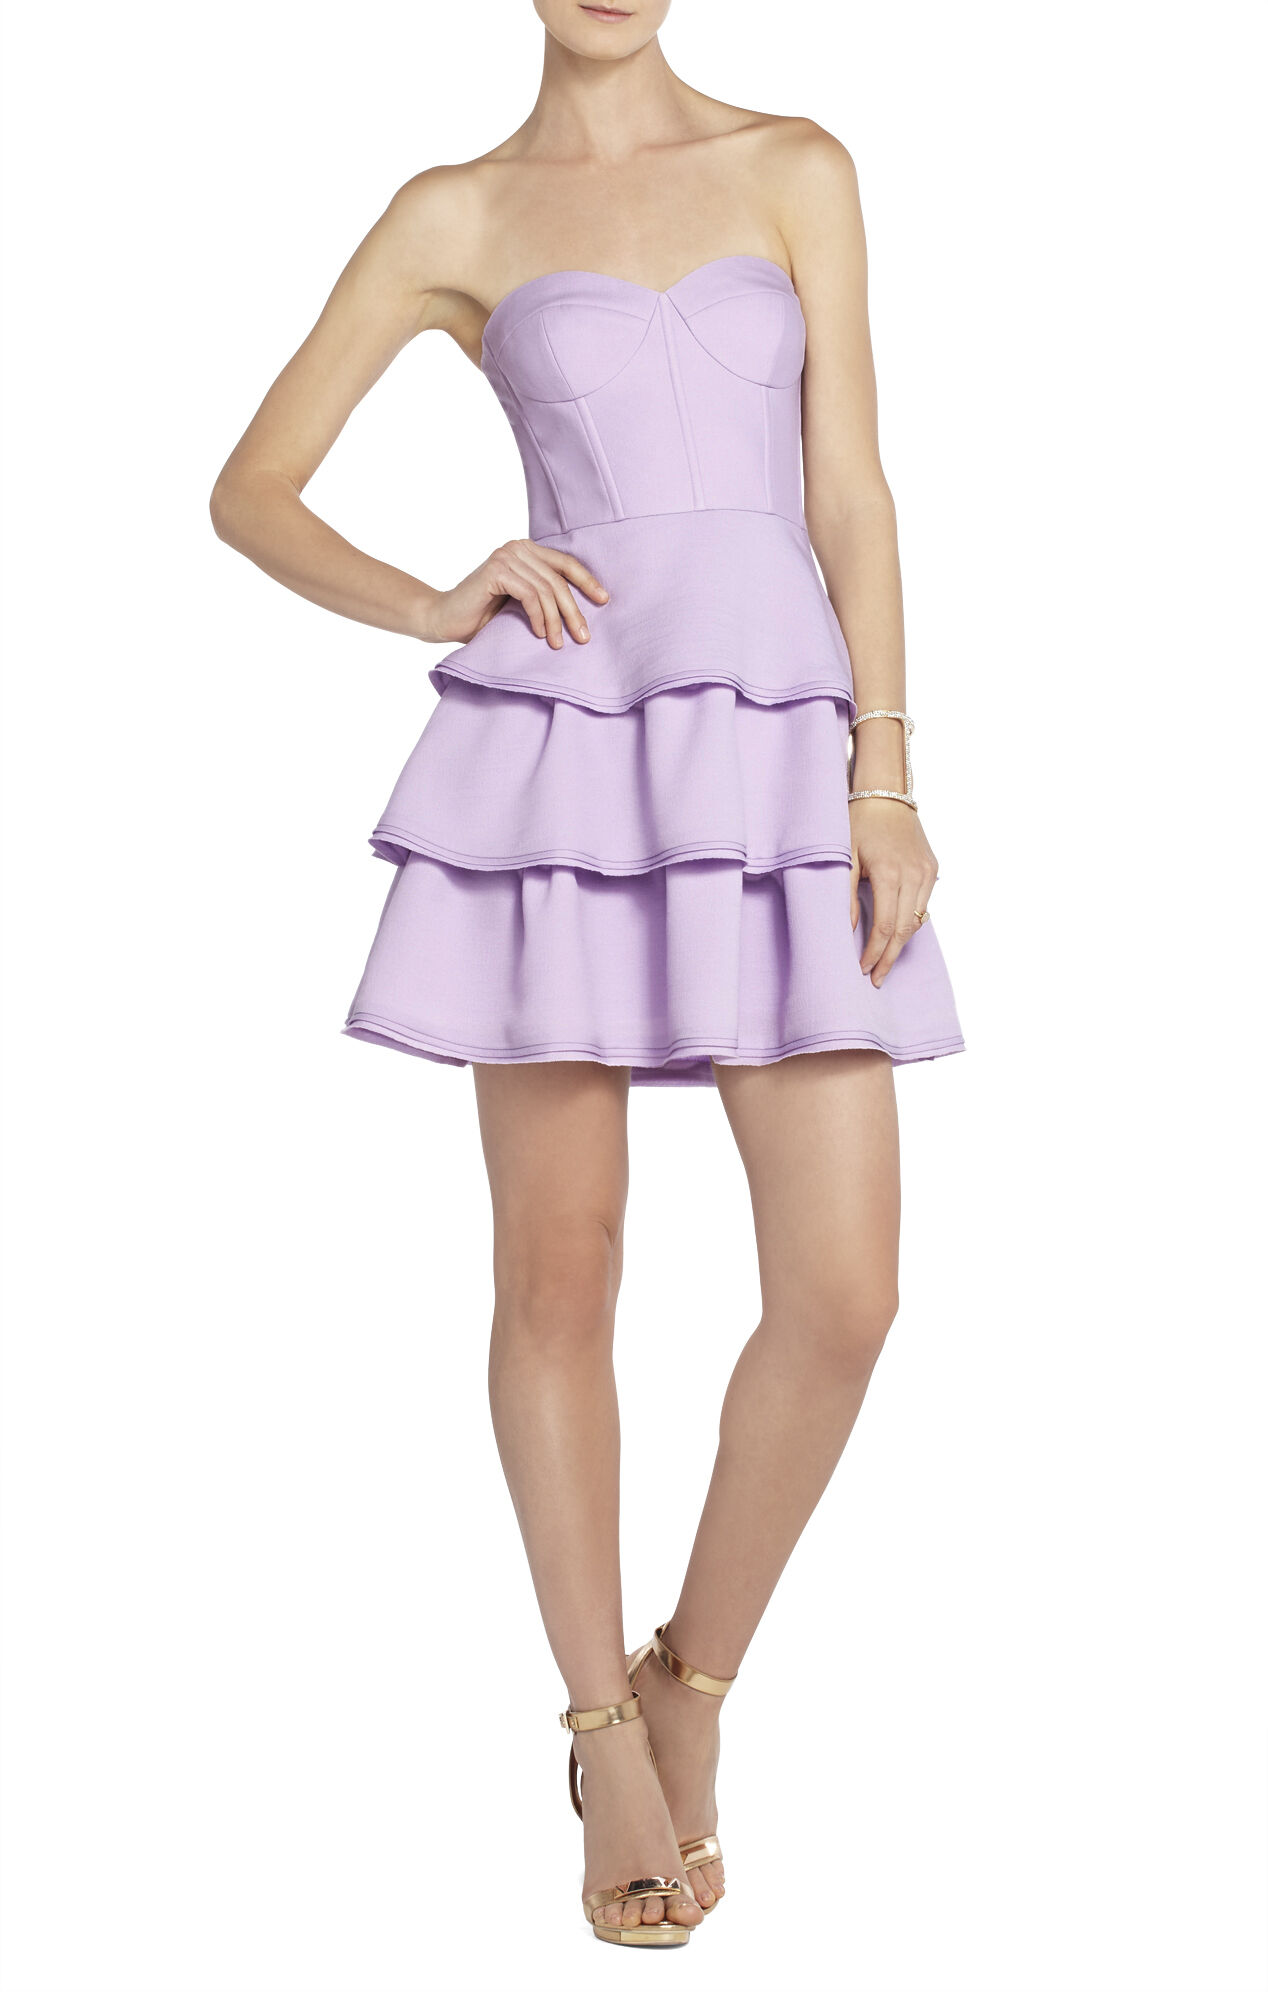 Shop for ruffle tiered dresses online at Target. Free shipping on purchases over $35 and save 5% every day with your Target REDcard.